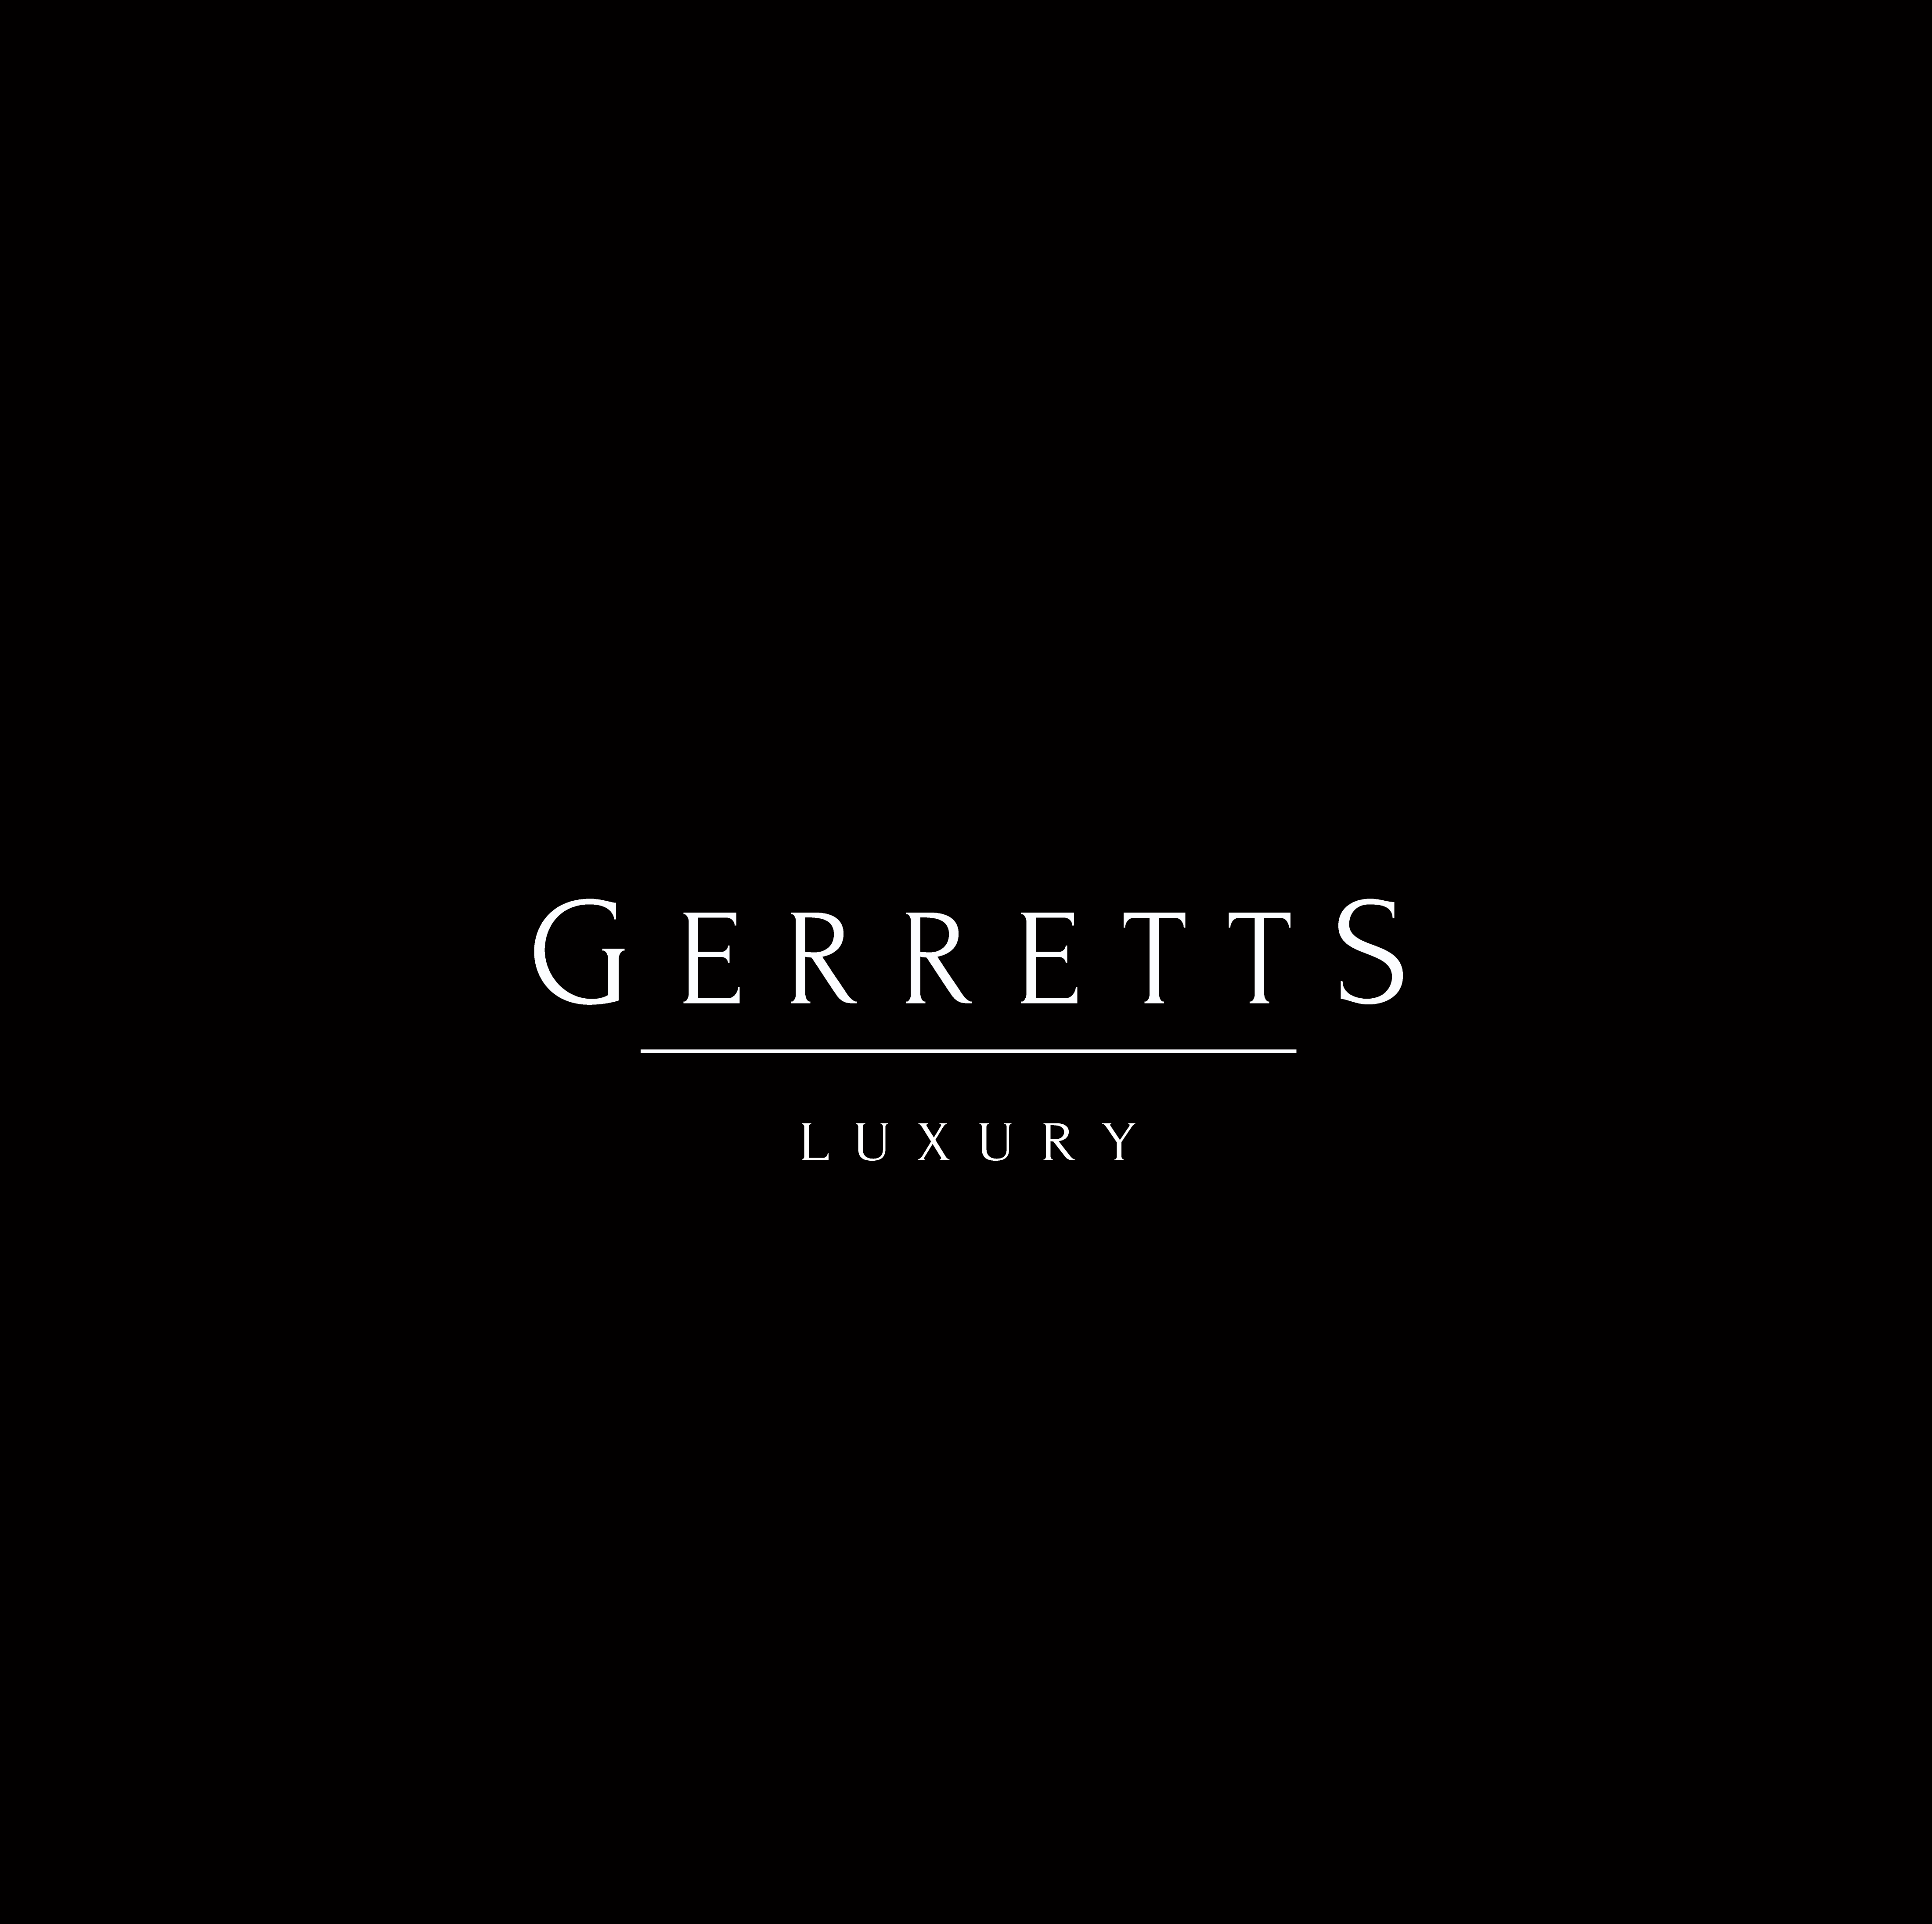 Logo for luxury trader with the option of a full design package